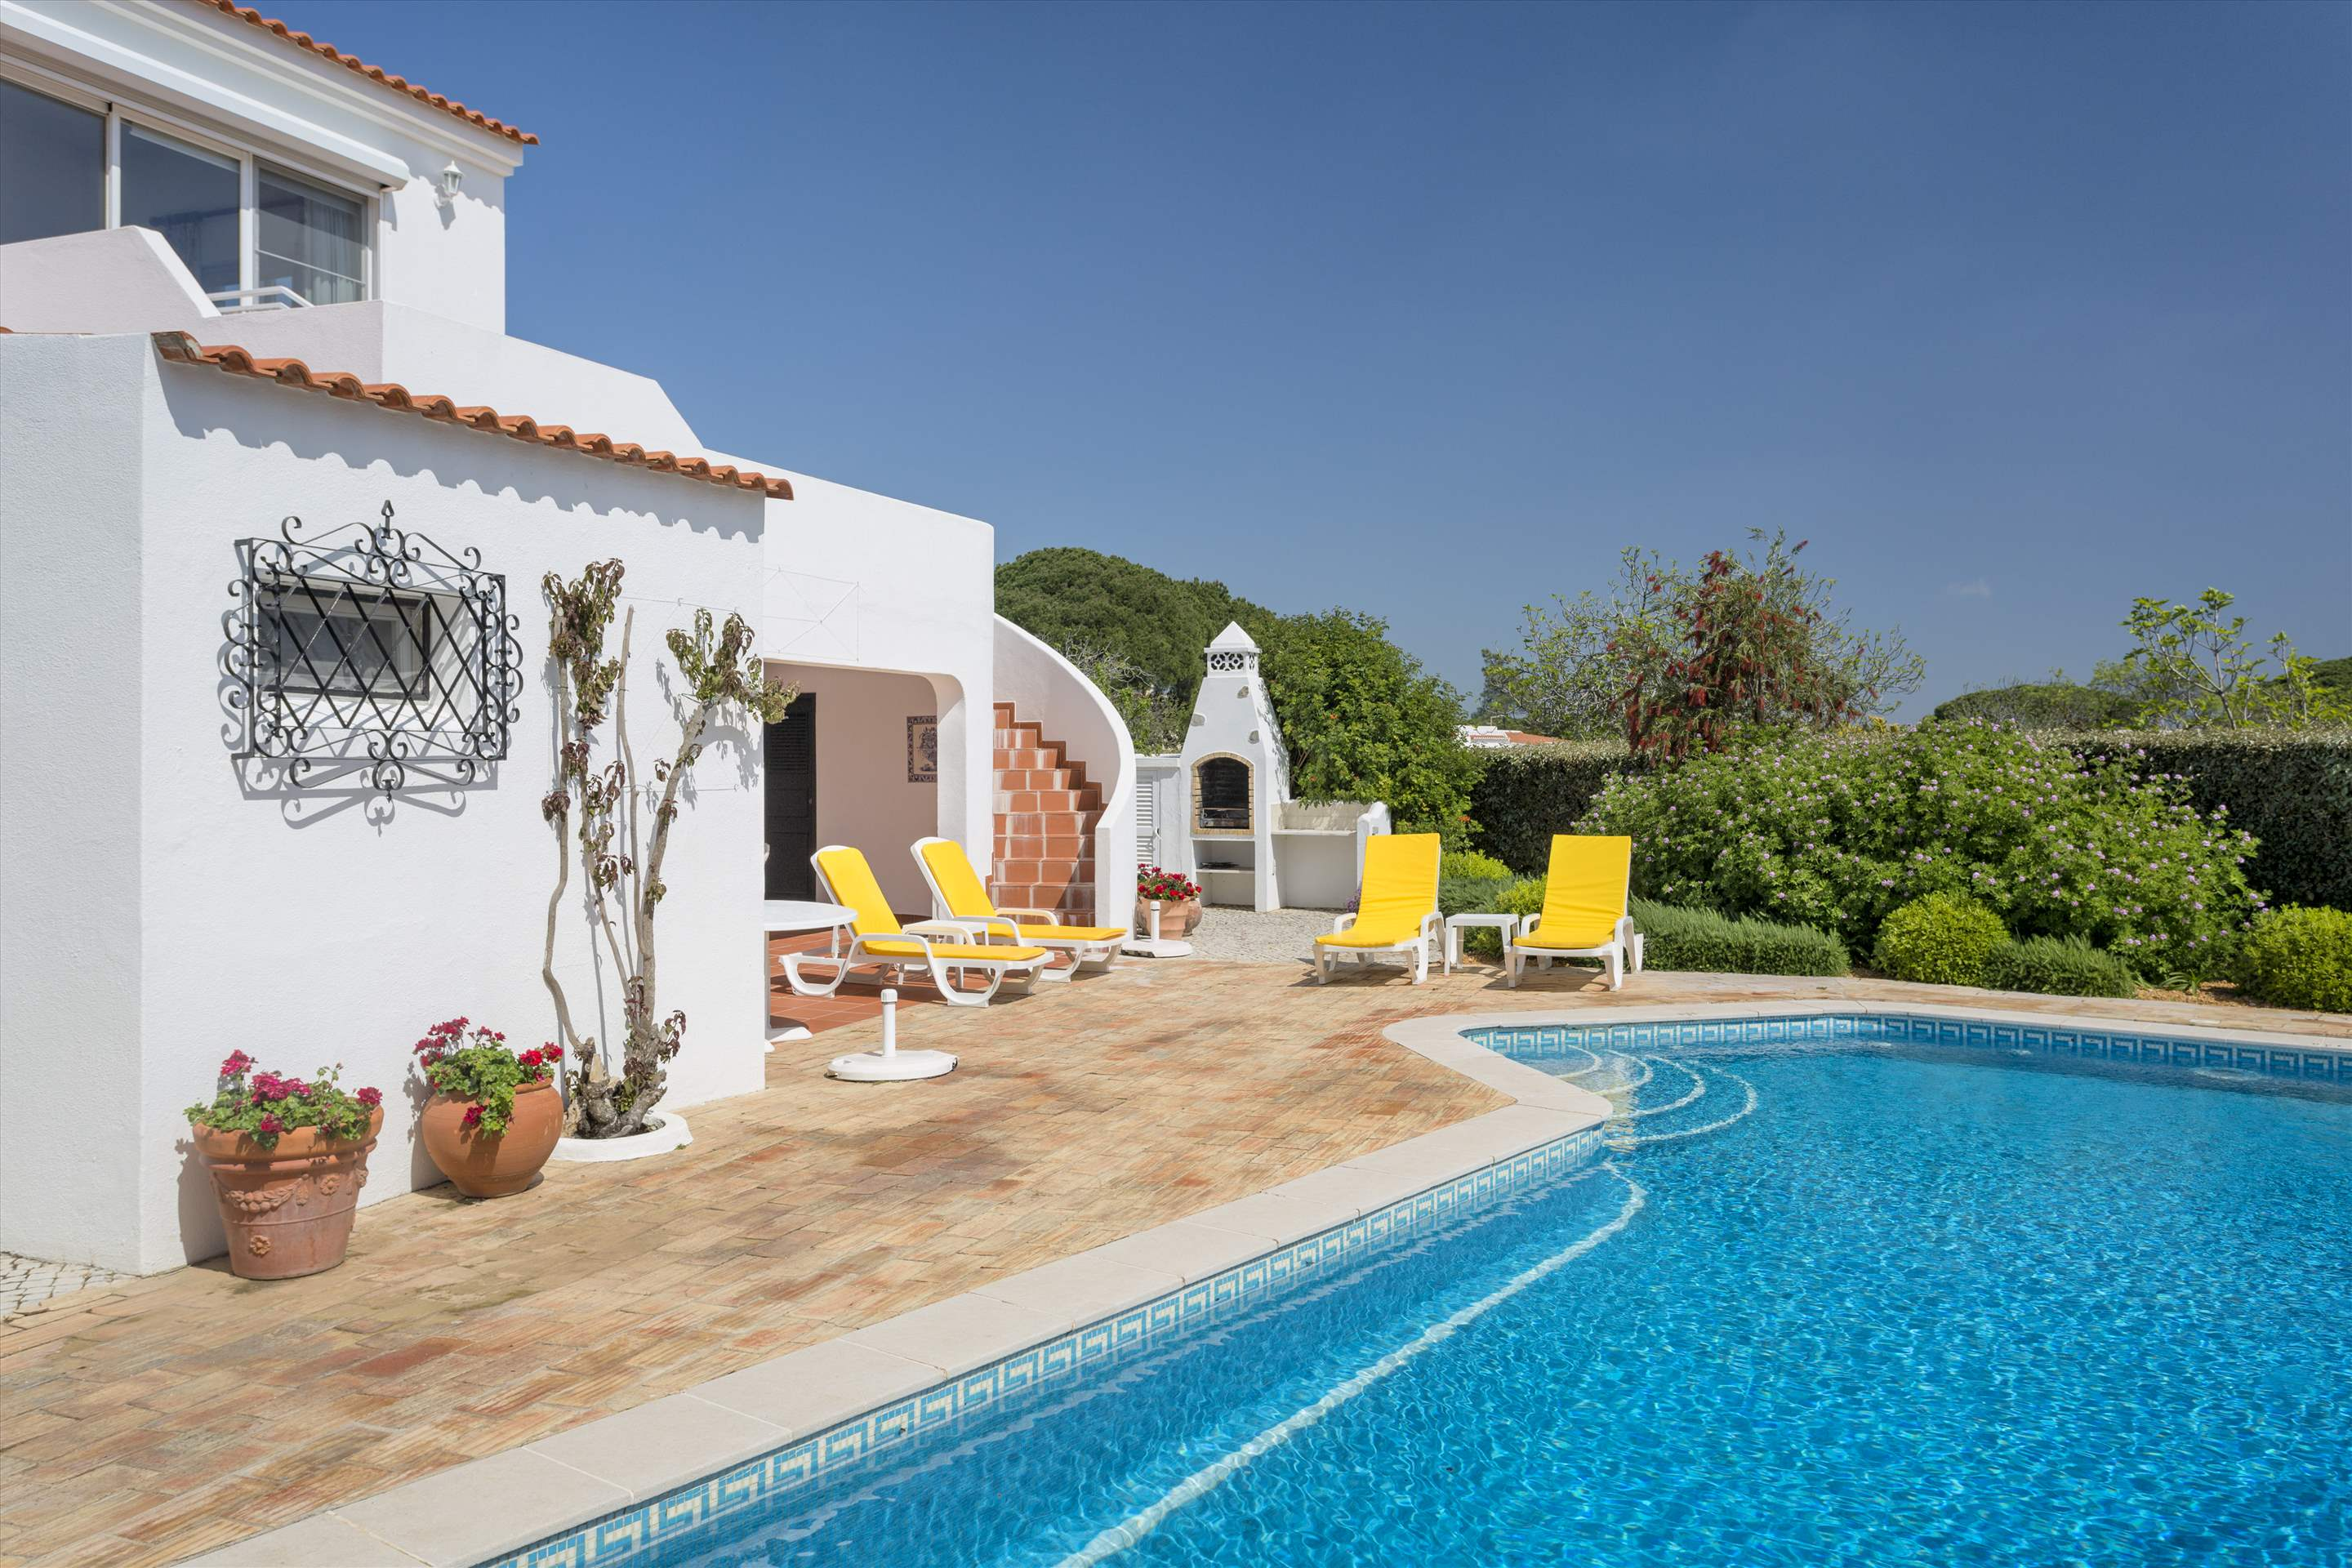 Villa Palmeira, 3 bedroom villa in Vale do Lobo, Algarve Photo #7